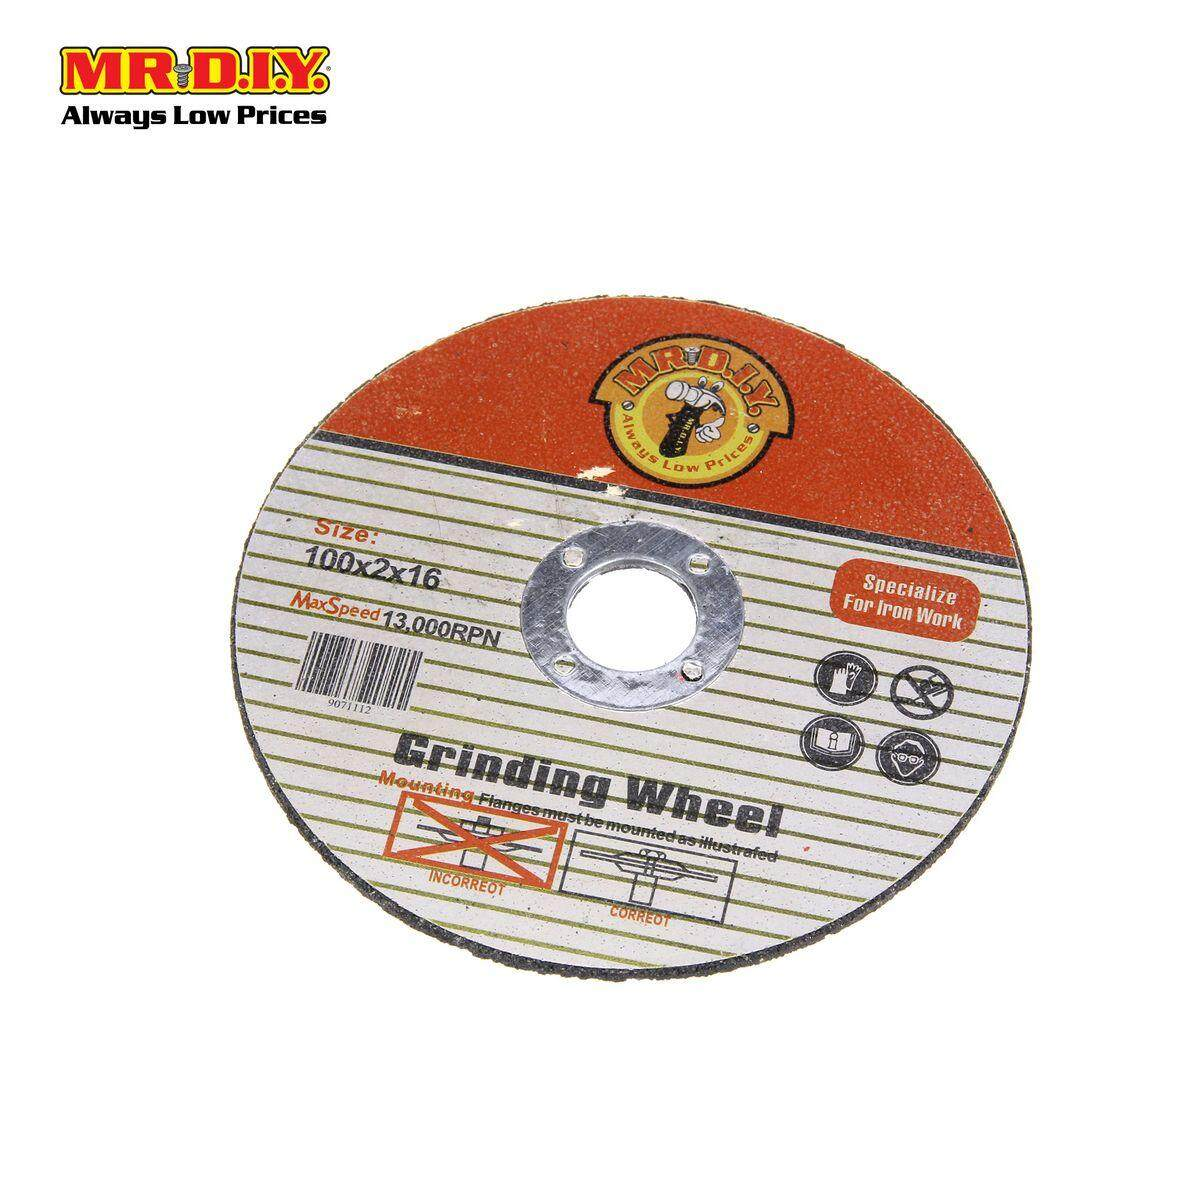 MR DIY Grinding Wheel 100 x 2 x 16 mm